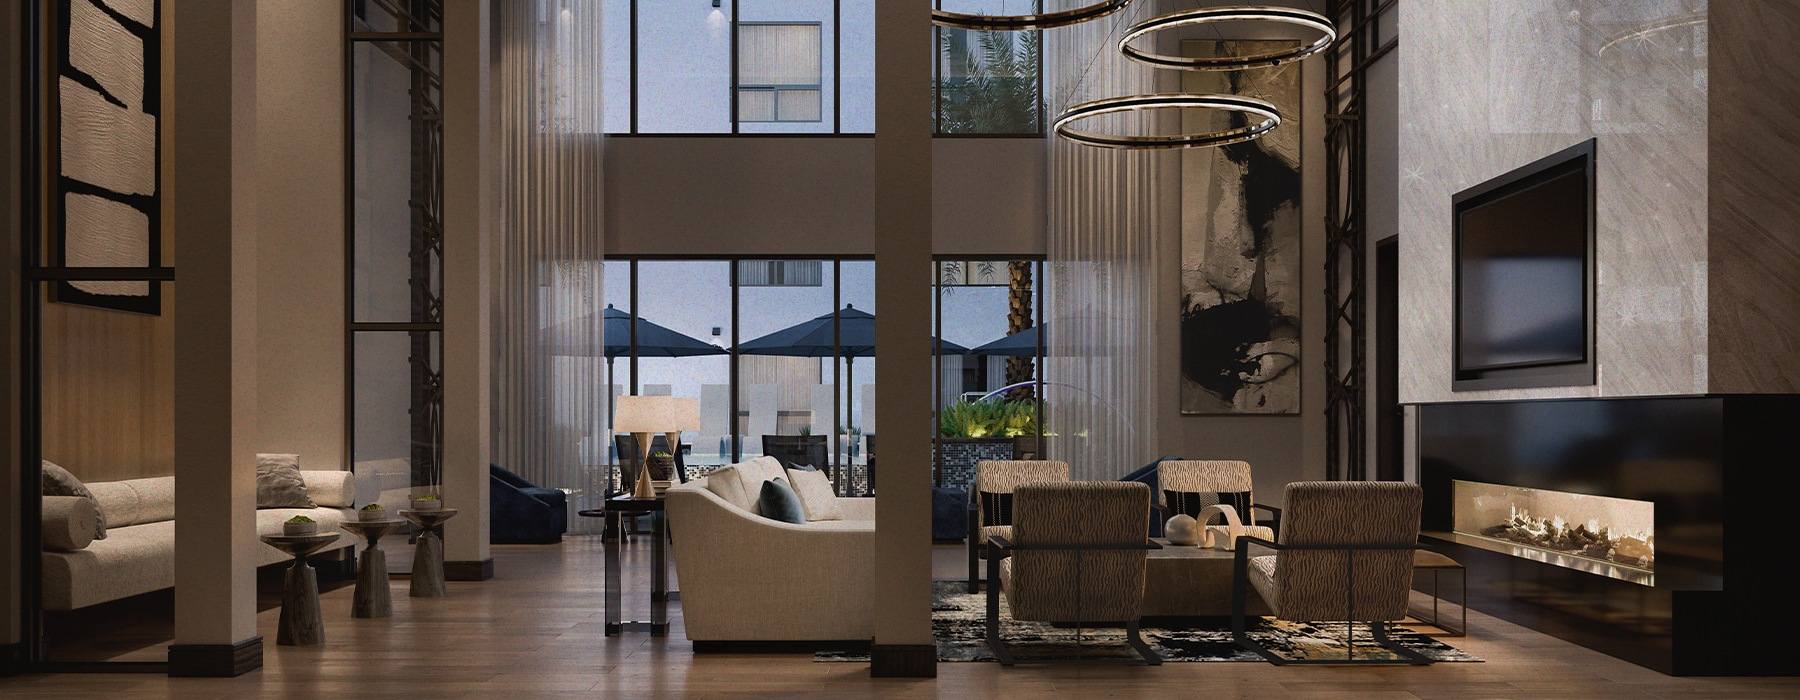 Double height luxury clubhouse with lounge seating